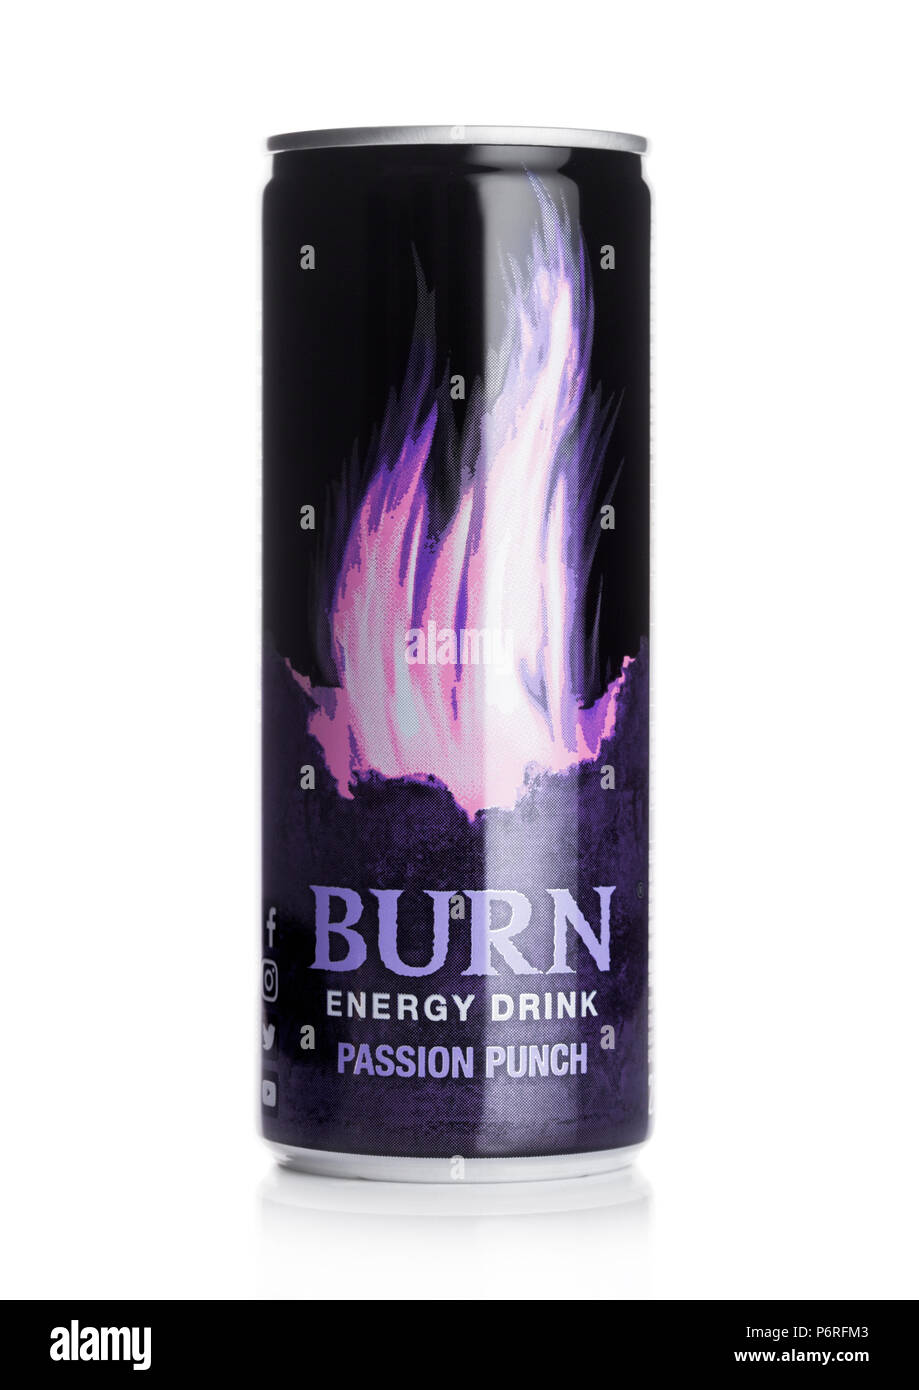 LONDON, UK - JUNE 30, 2018: Can of Burn Energy Drink Original on white background. Burn energy is made for keeping eyes open and mind sharp. - Stock Image